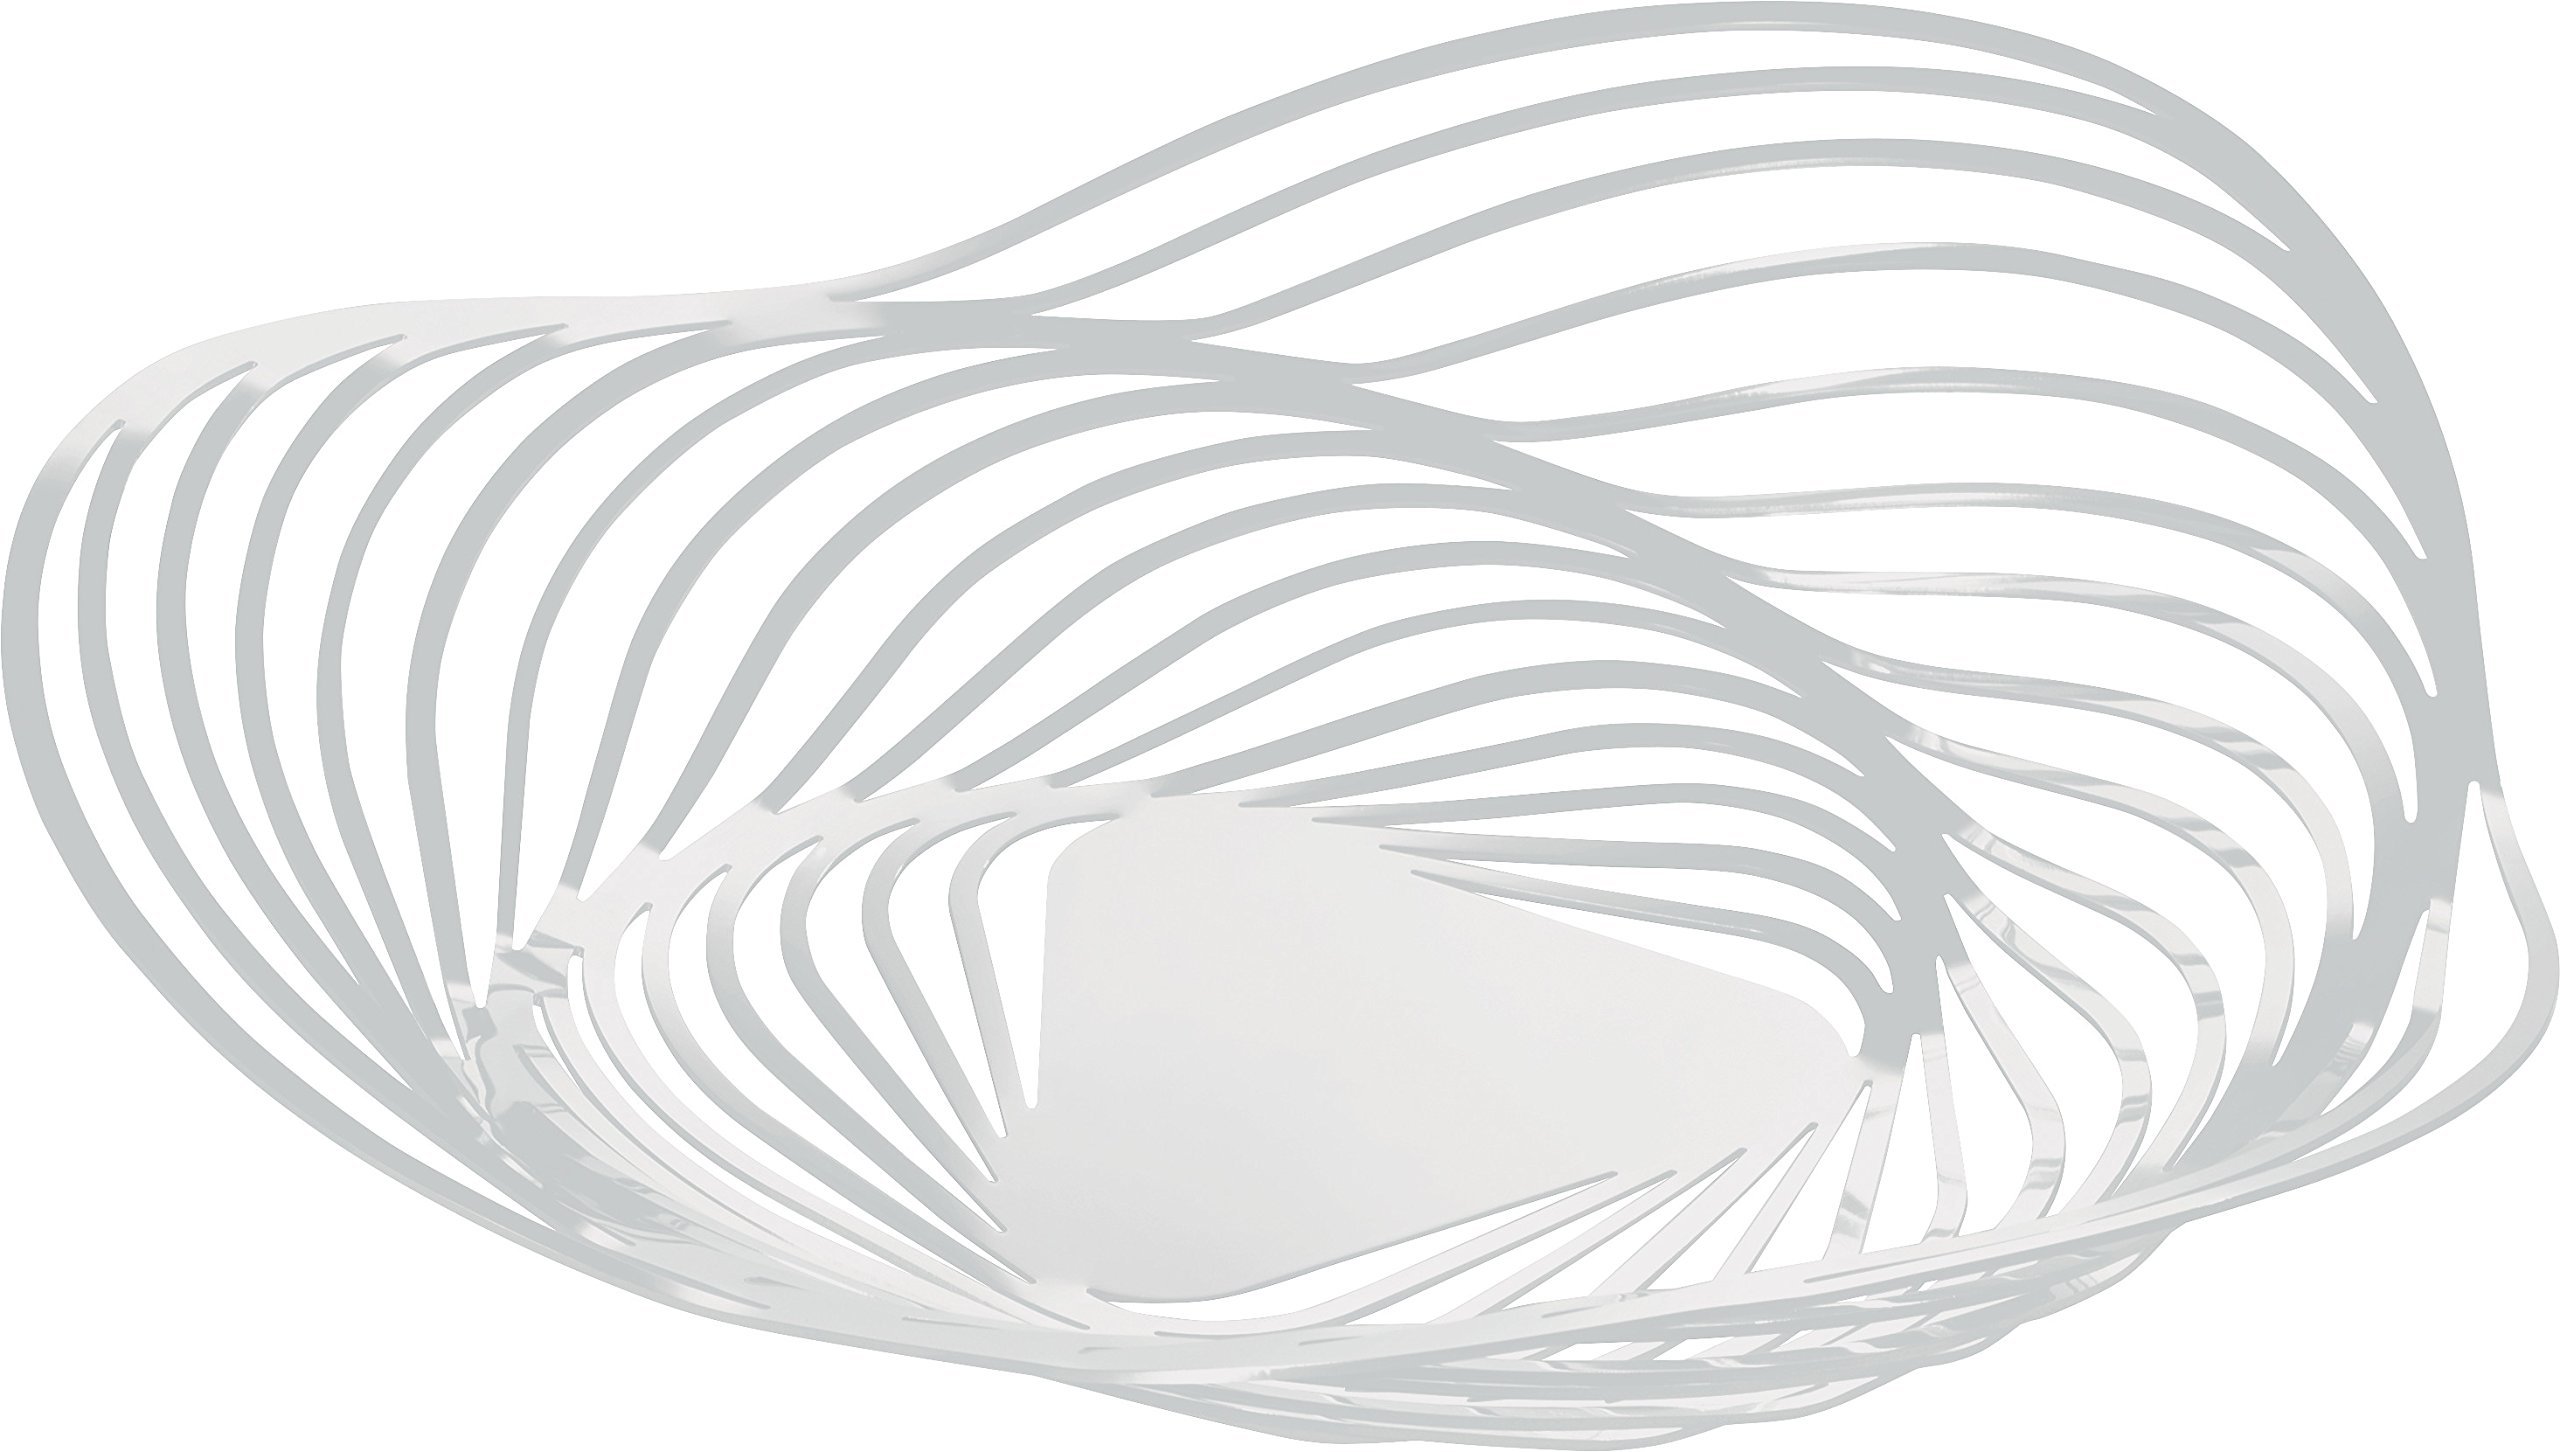 Alessi''Trinity'' Centerpiece in Steel Colored with Epoxy Resin, White by Alessi (Image #1)